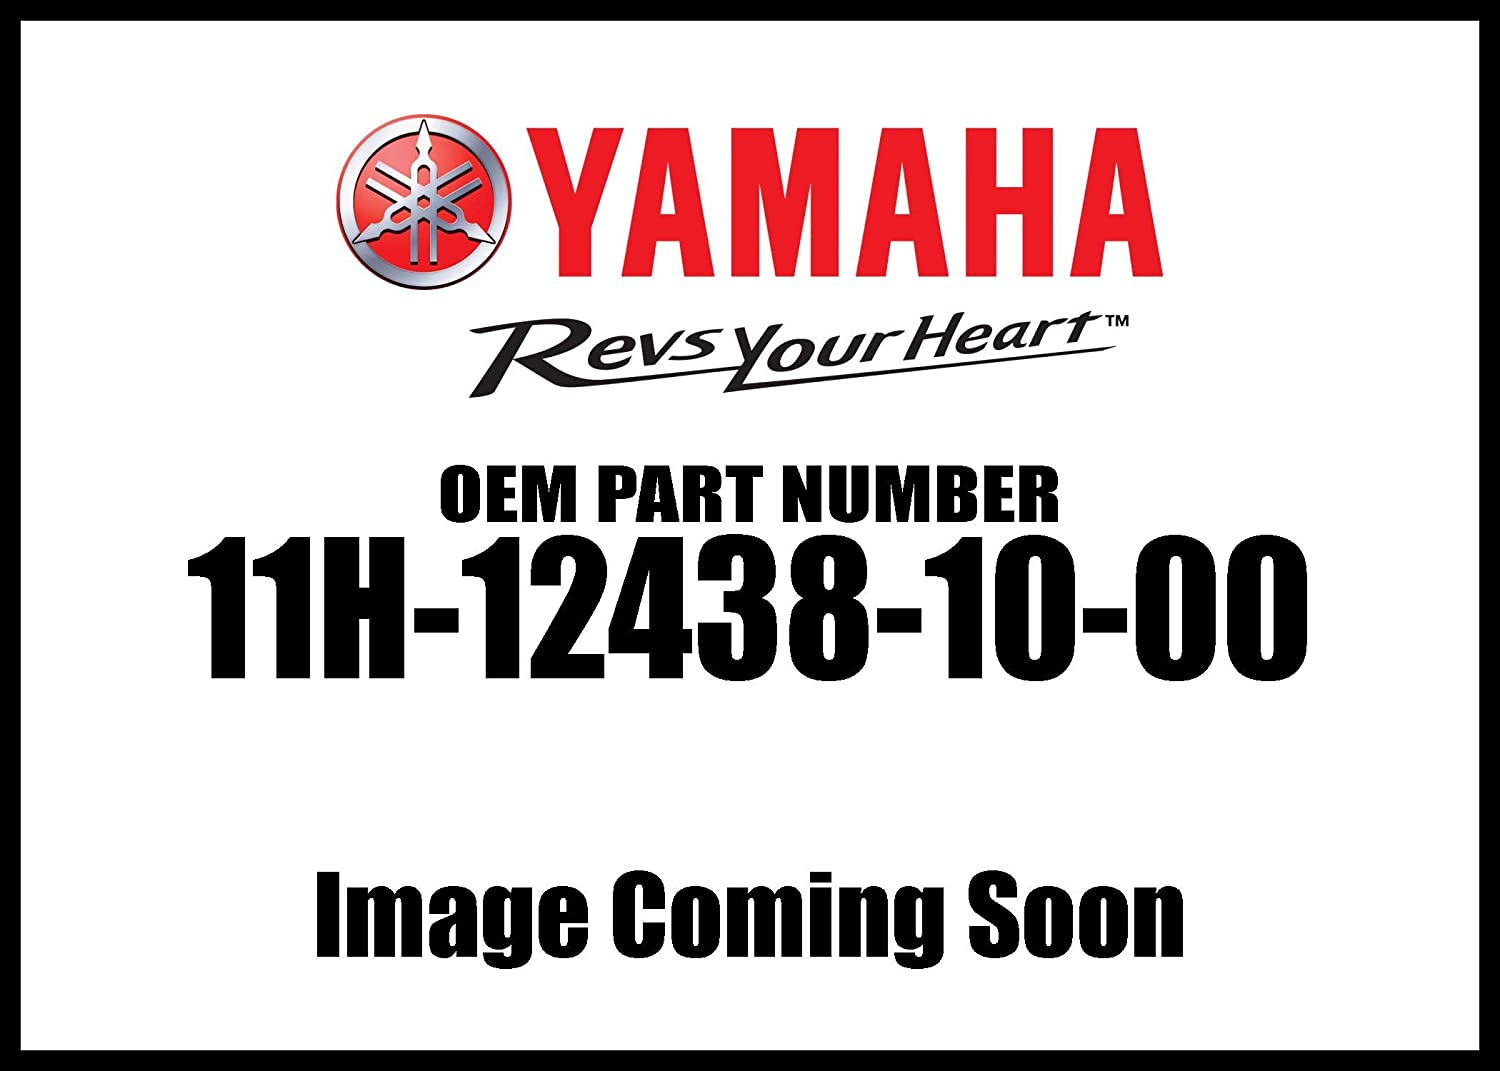 Yamaha 11H-12438-10-00 SEAL, MECHANICAL; 11H124381000 , 11H-12438-10-00, 11H-12438-00-00